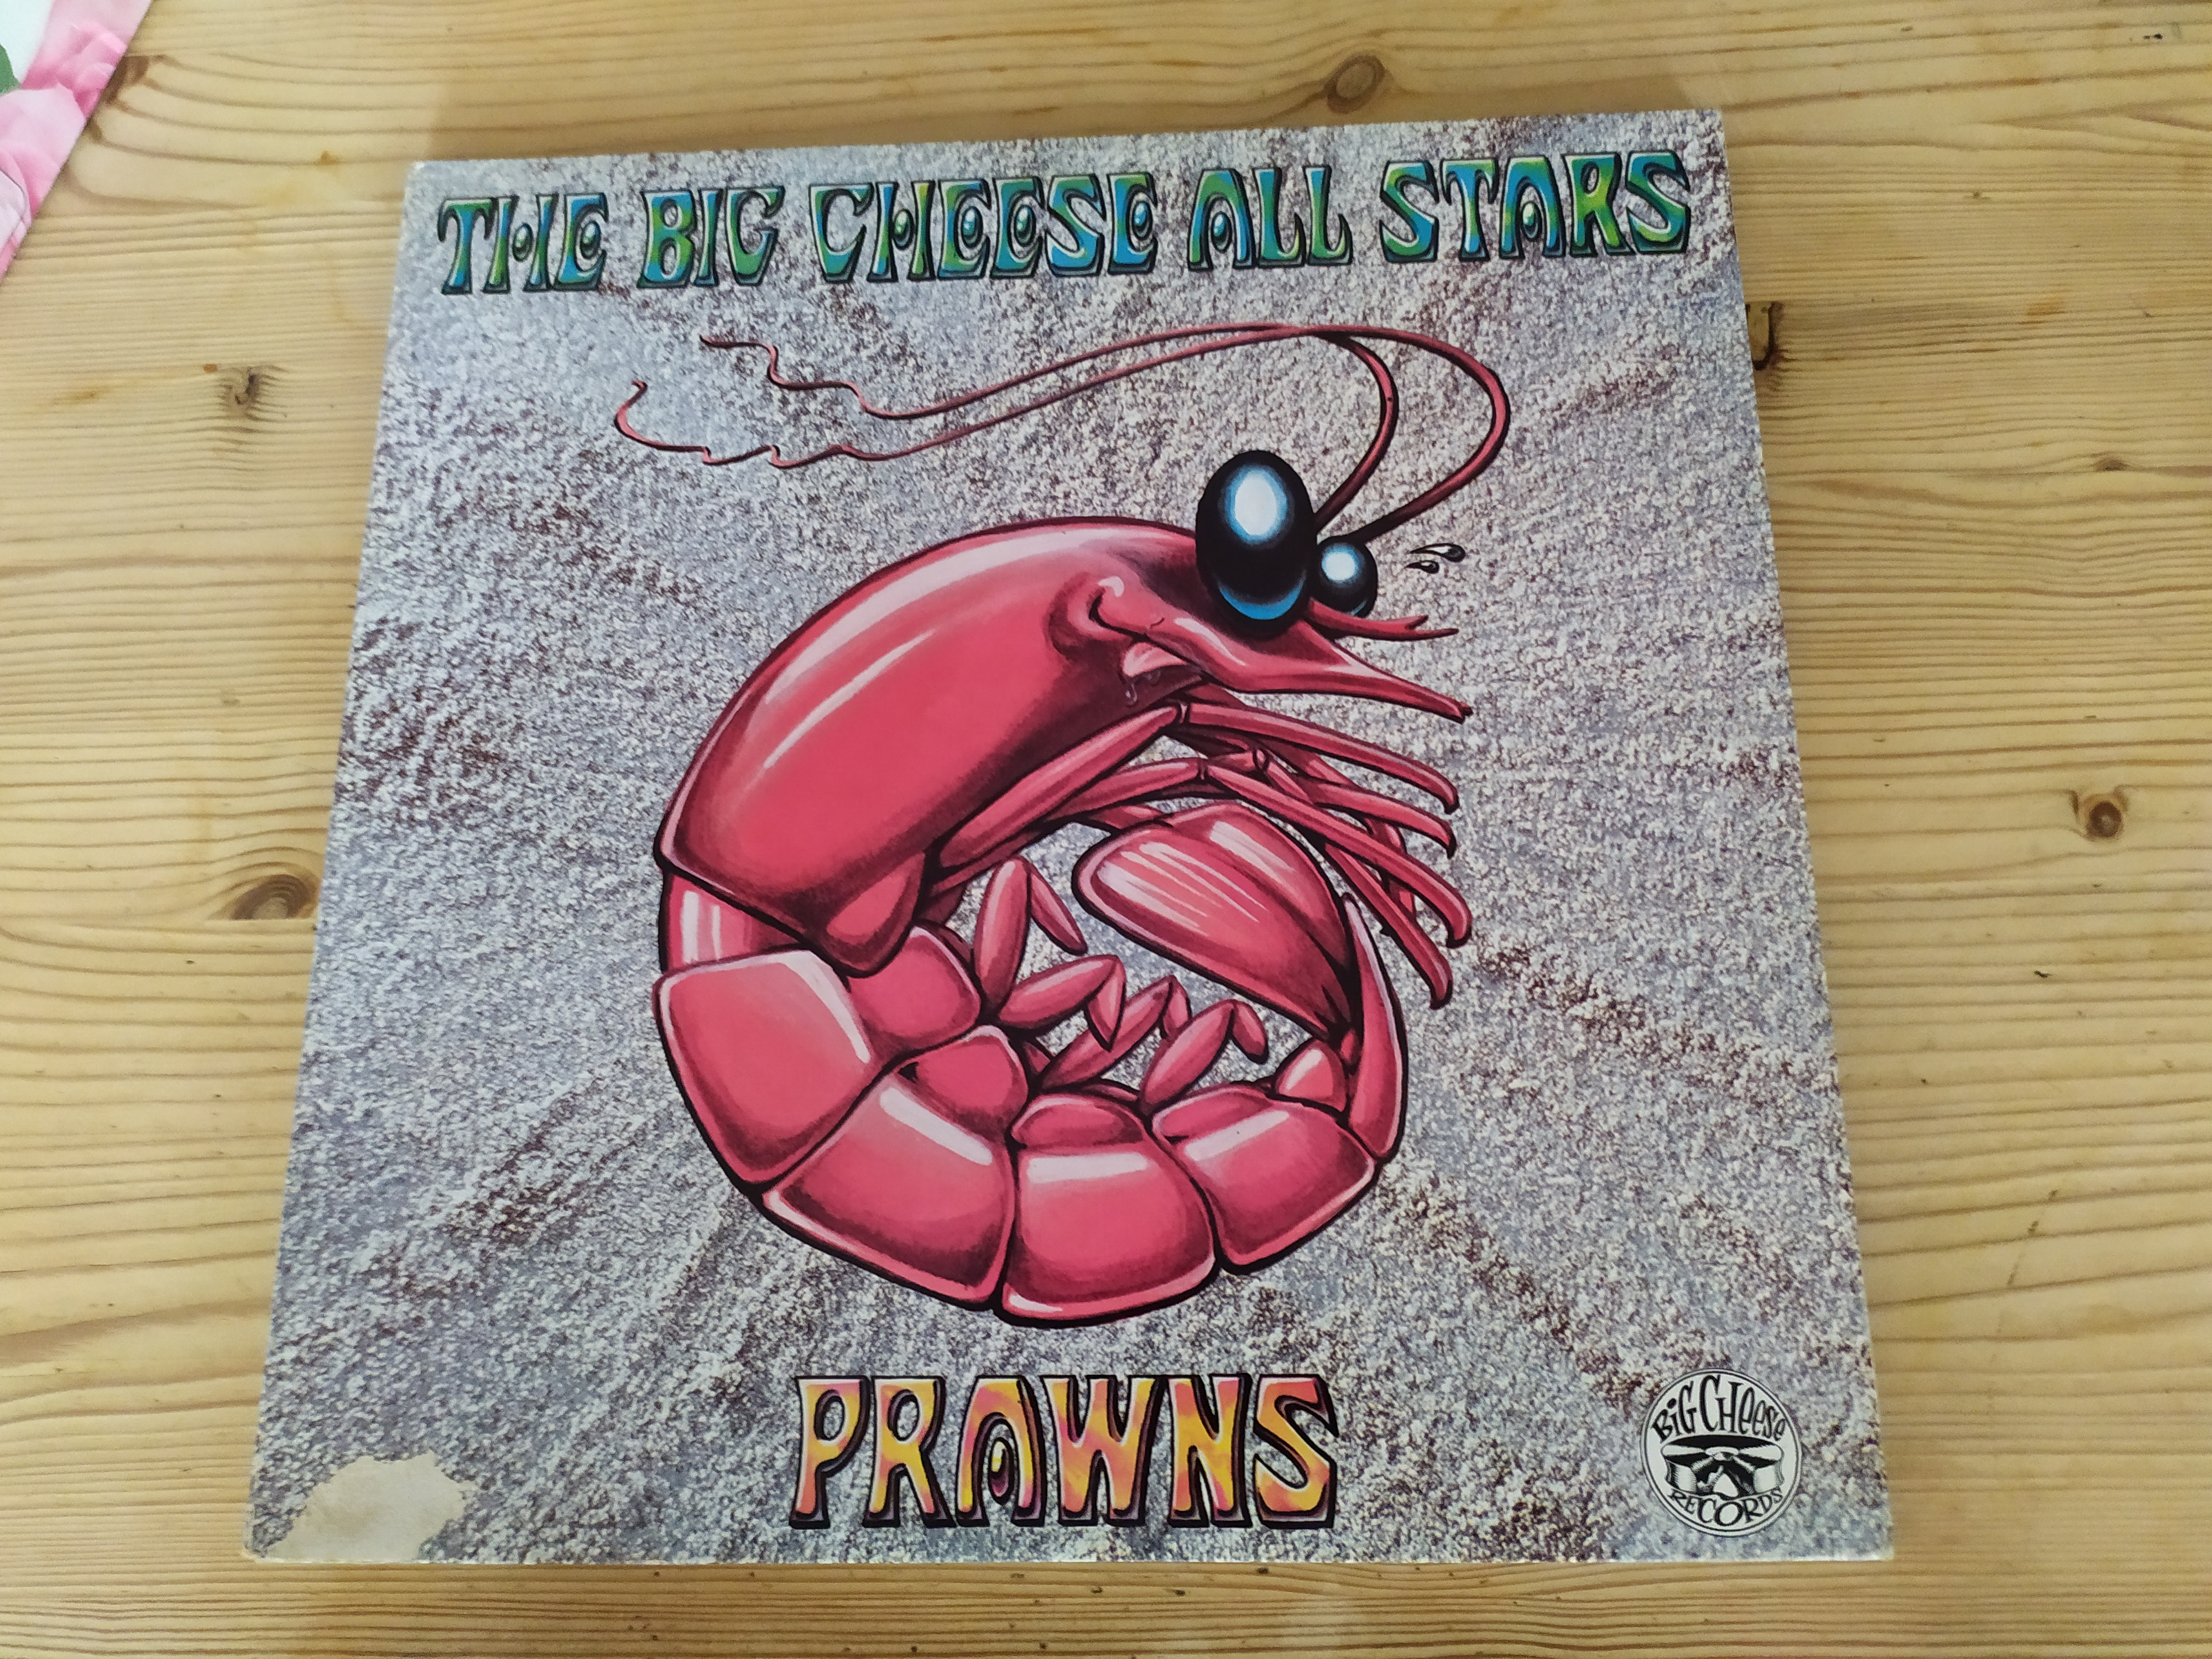 Buy vinyl artist% PRAWNS for sale